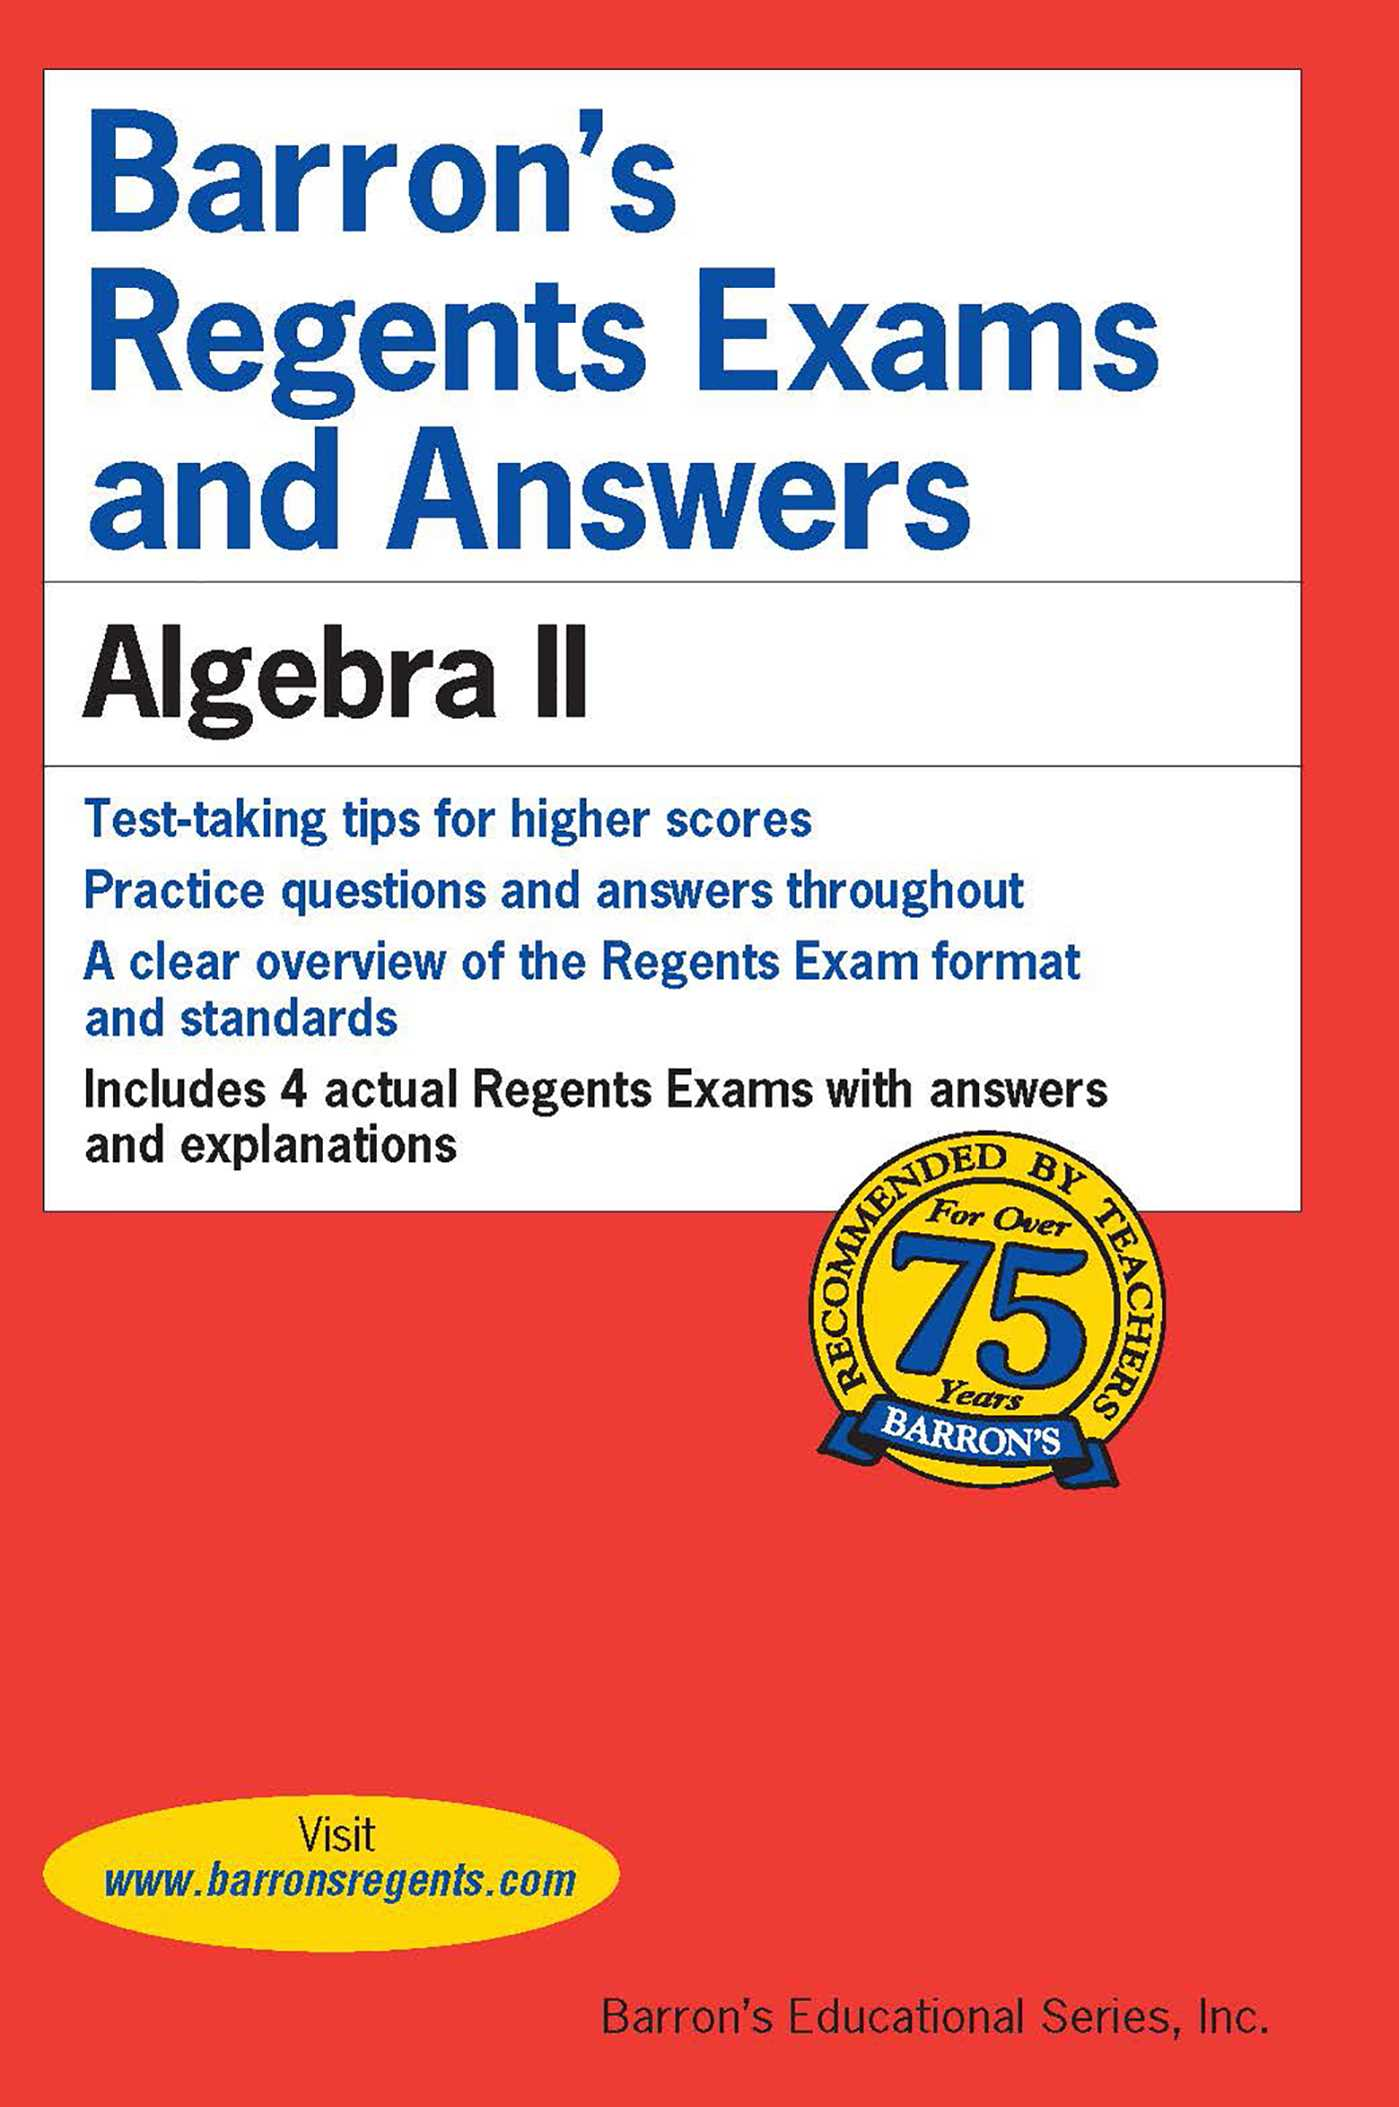 Barron's Regents Exams and Answers: Algebra II | Book by